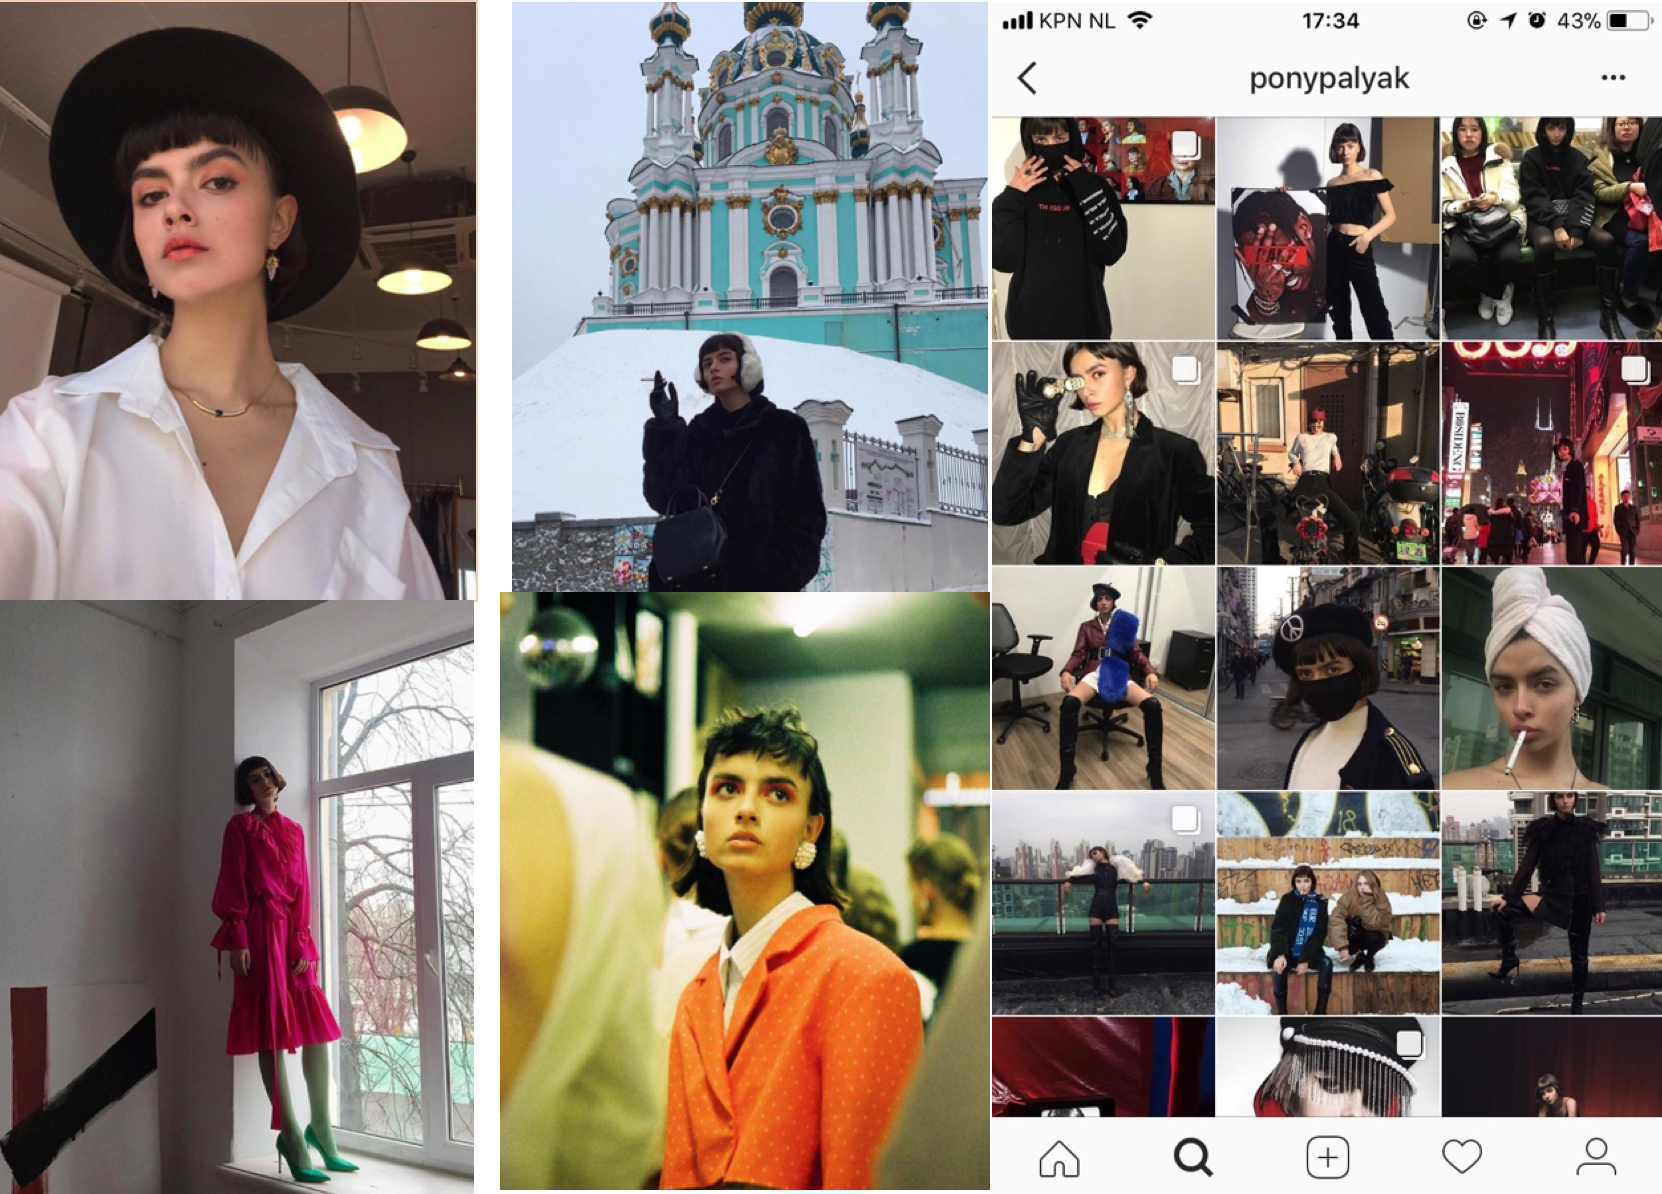 ukraine fashion Instagram account ponypalak